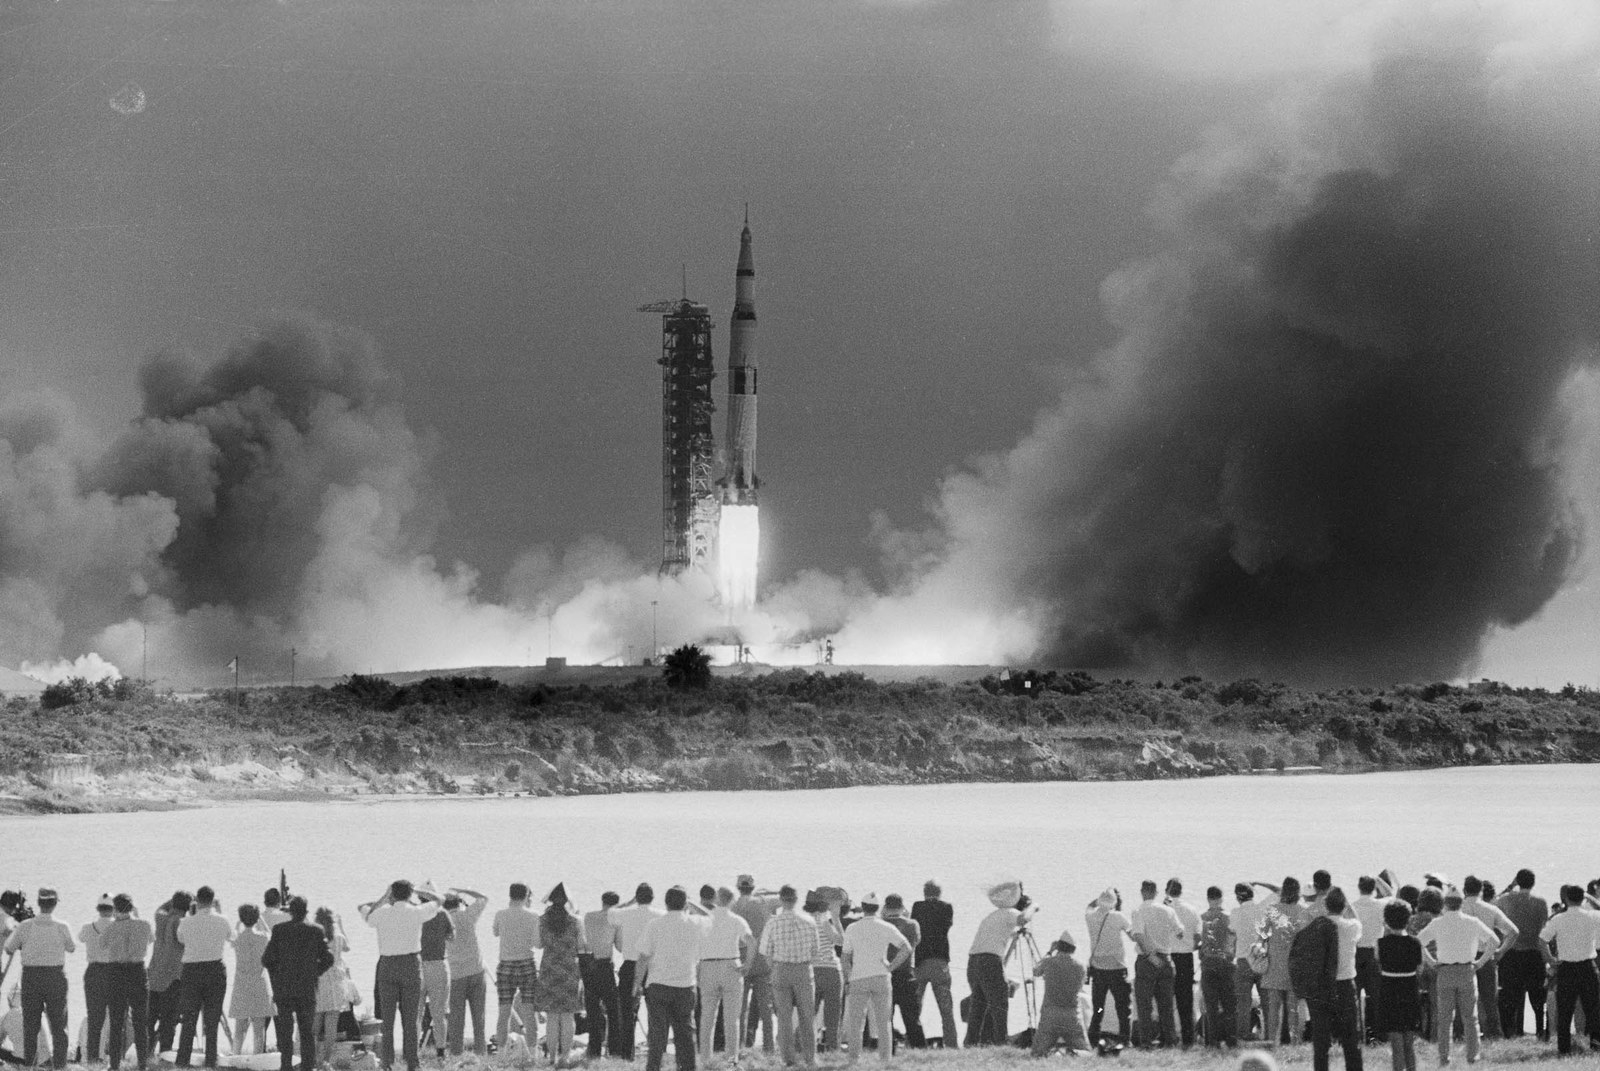 1969 The Apollo 11 mission gets underway at 9:32 a.m., as the Saturn V rocket, carrying the spacecraft on its nose, blasts off. This photo shows a small part of the vast throng that flocked to Cocoa Beach to witness the spectacle seconds after ignition. Apollo 11 landed the first men on the moon.